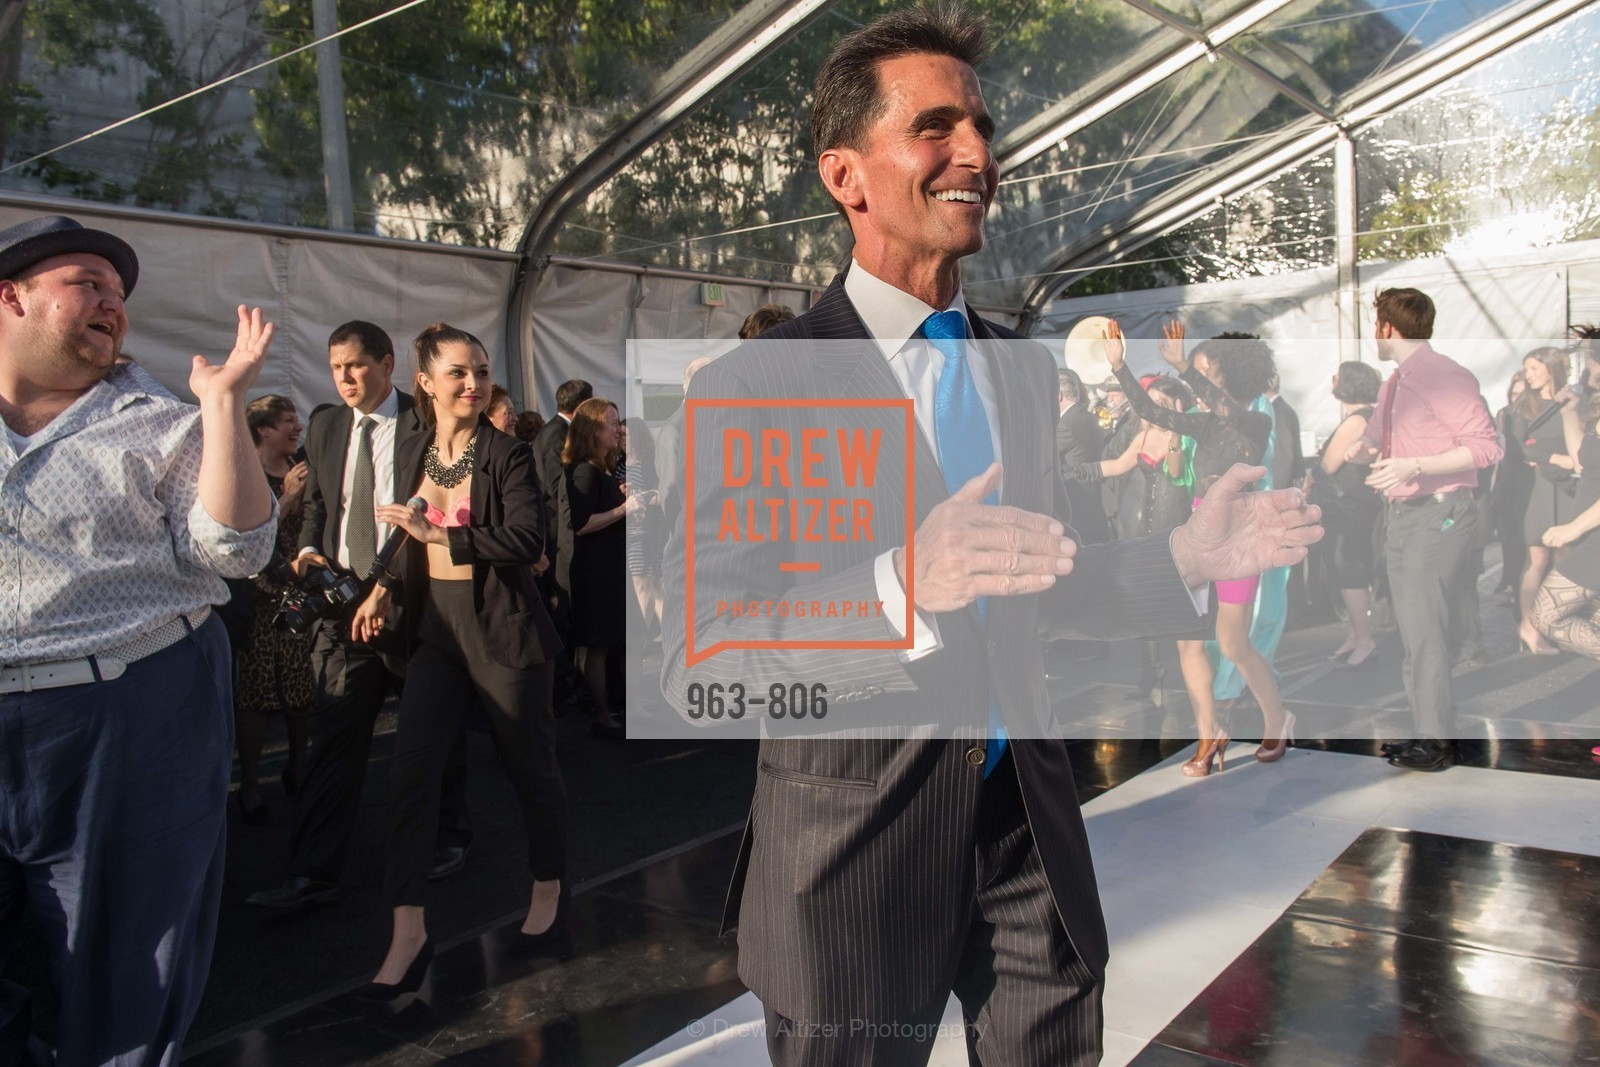 Mark Leno, A.C.T. Gala Come Get Stranded, US, April 25th, 2015,Drew Altizer, Drew Altizer Photography, full-service agency, private events, San Francisco photographer, photographer california